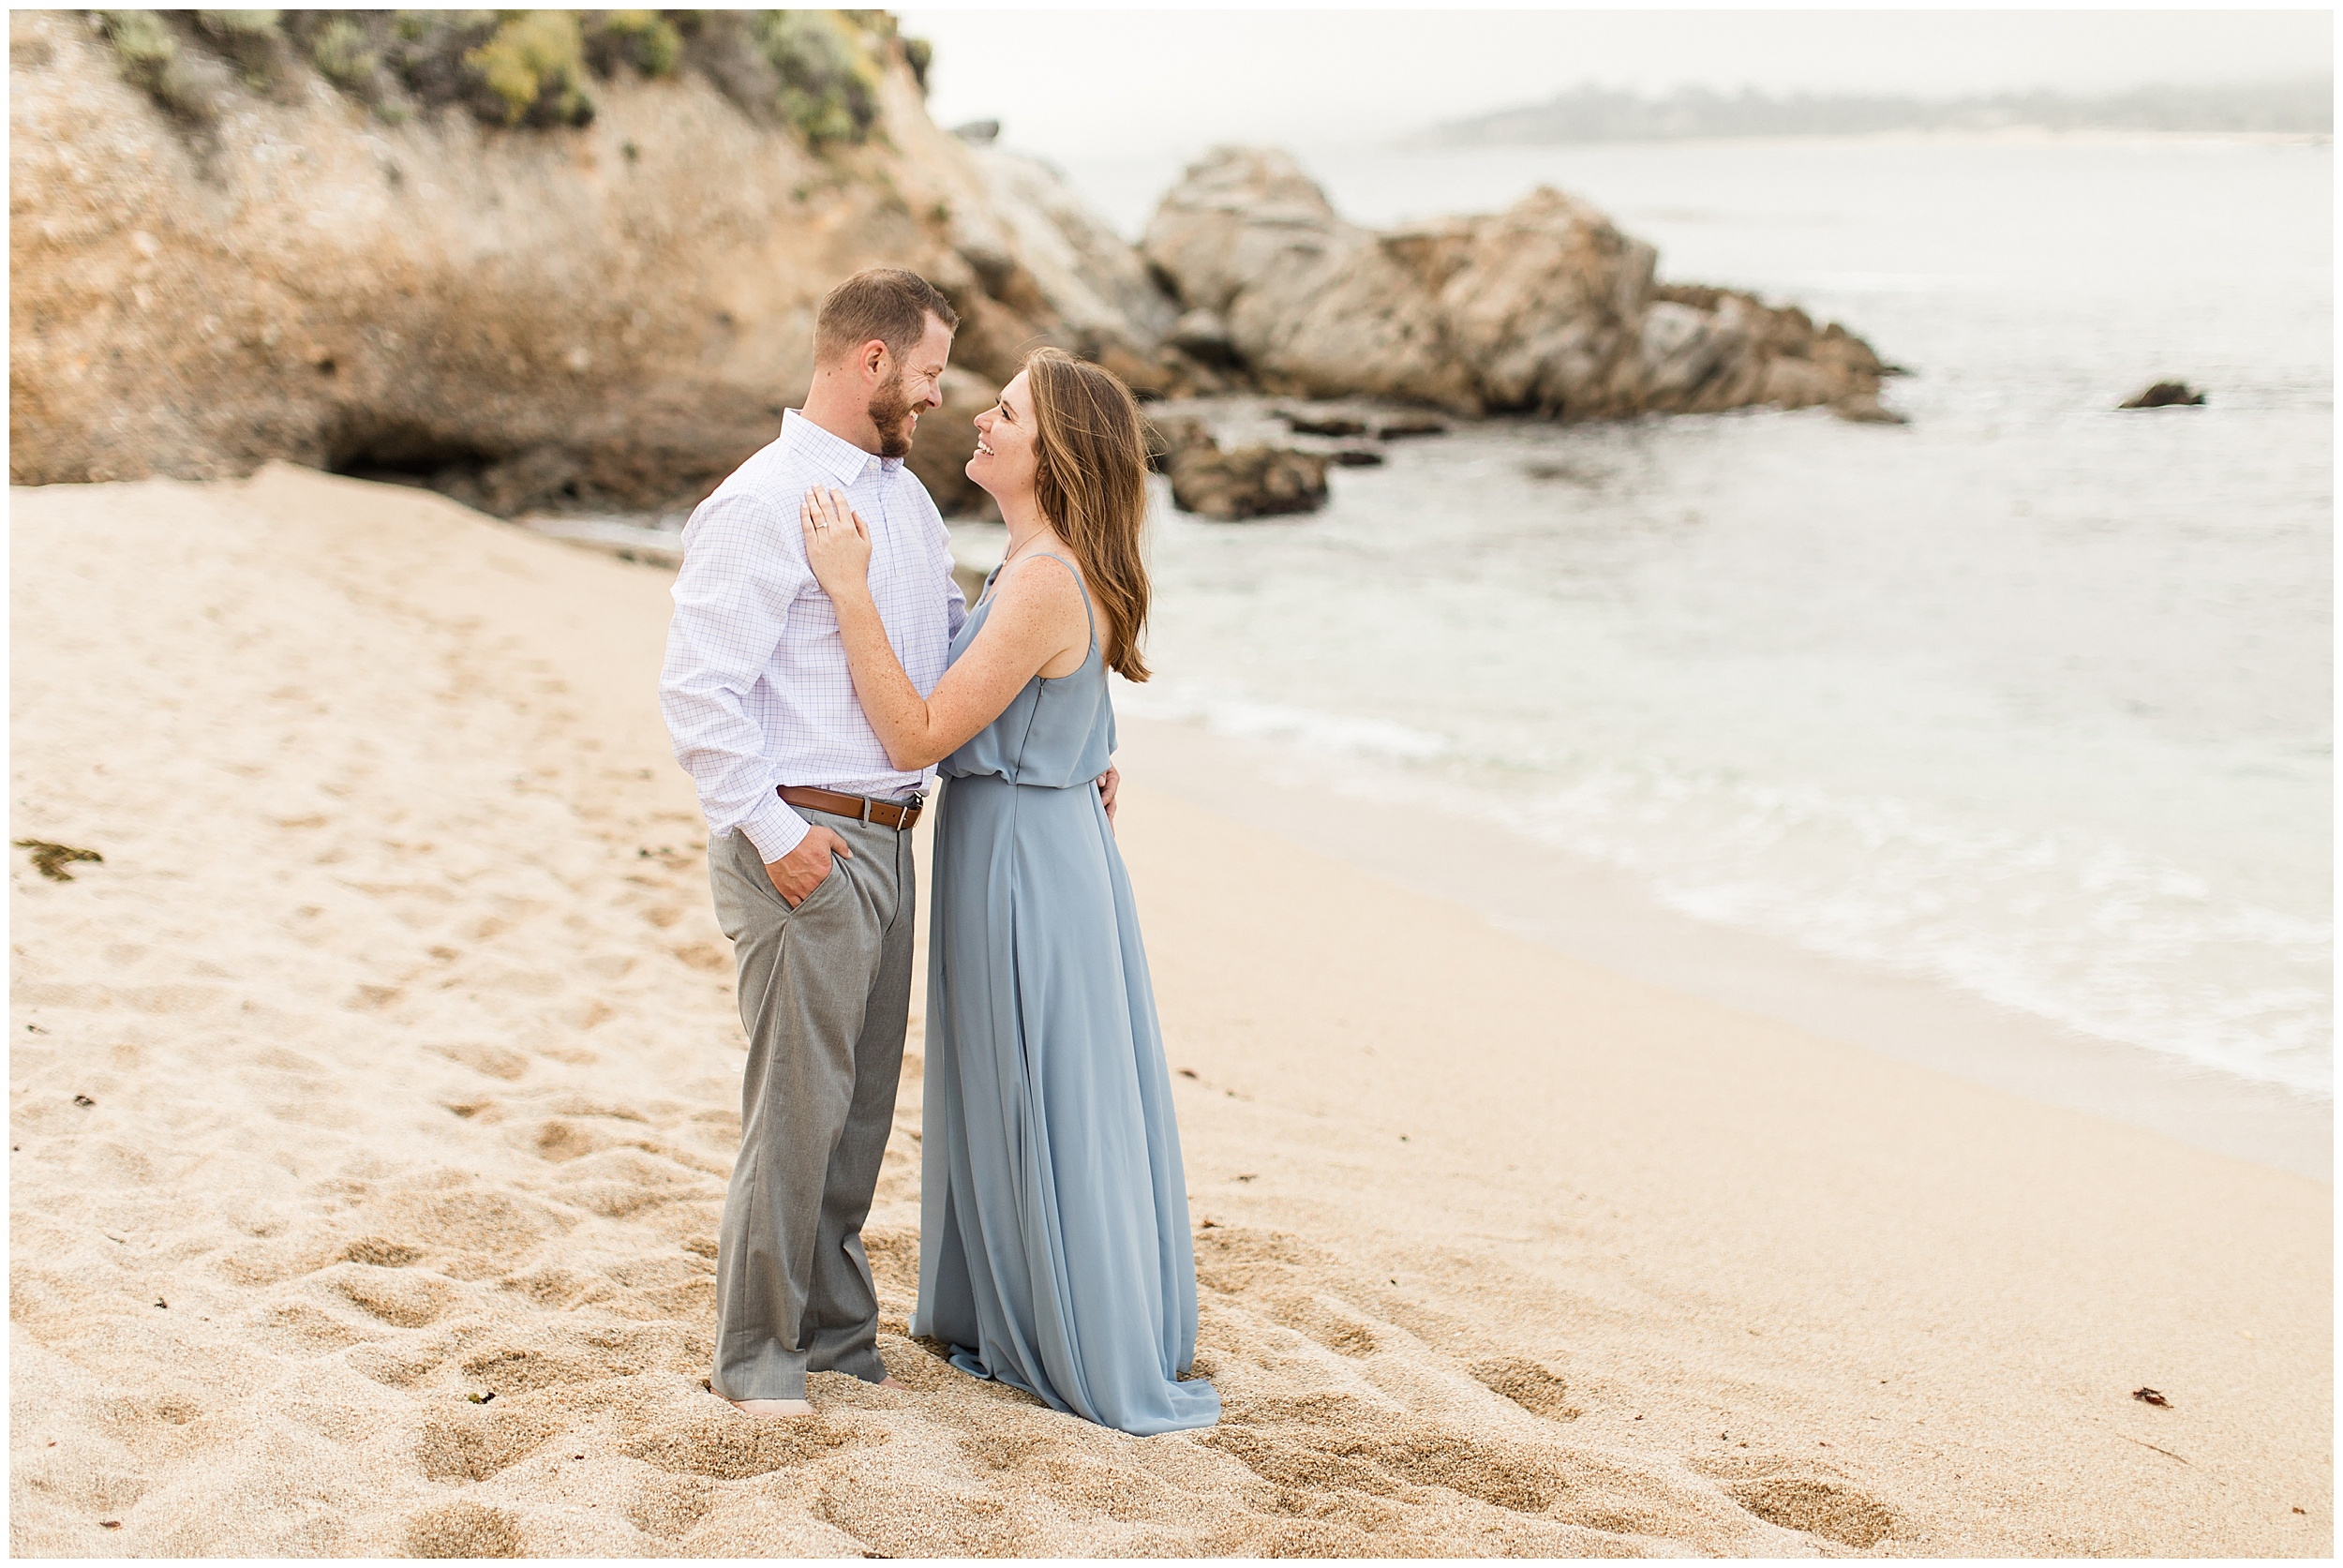 2019 carmel by the sea surprise proposal engagement session wedding photographer angela sue photography_0030.jpg